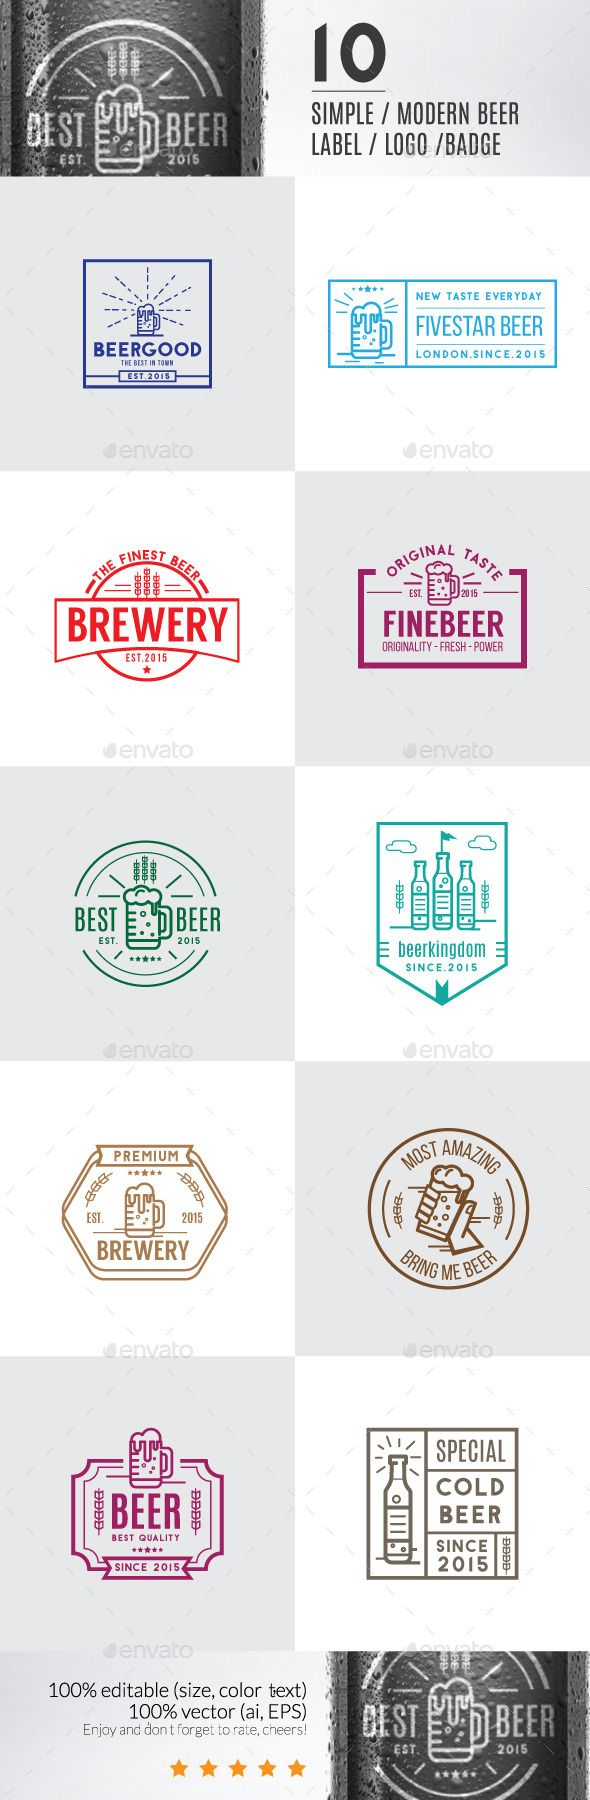 10 Modern Beer Label, Logos & Badge #logo #labels #design Download: http://graphicriver.net/item/10-modern-beer-label-logos-badge/11788892?ref=ksioks